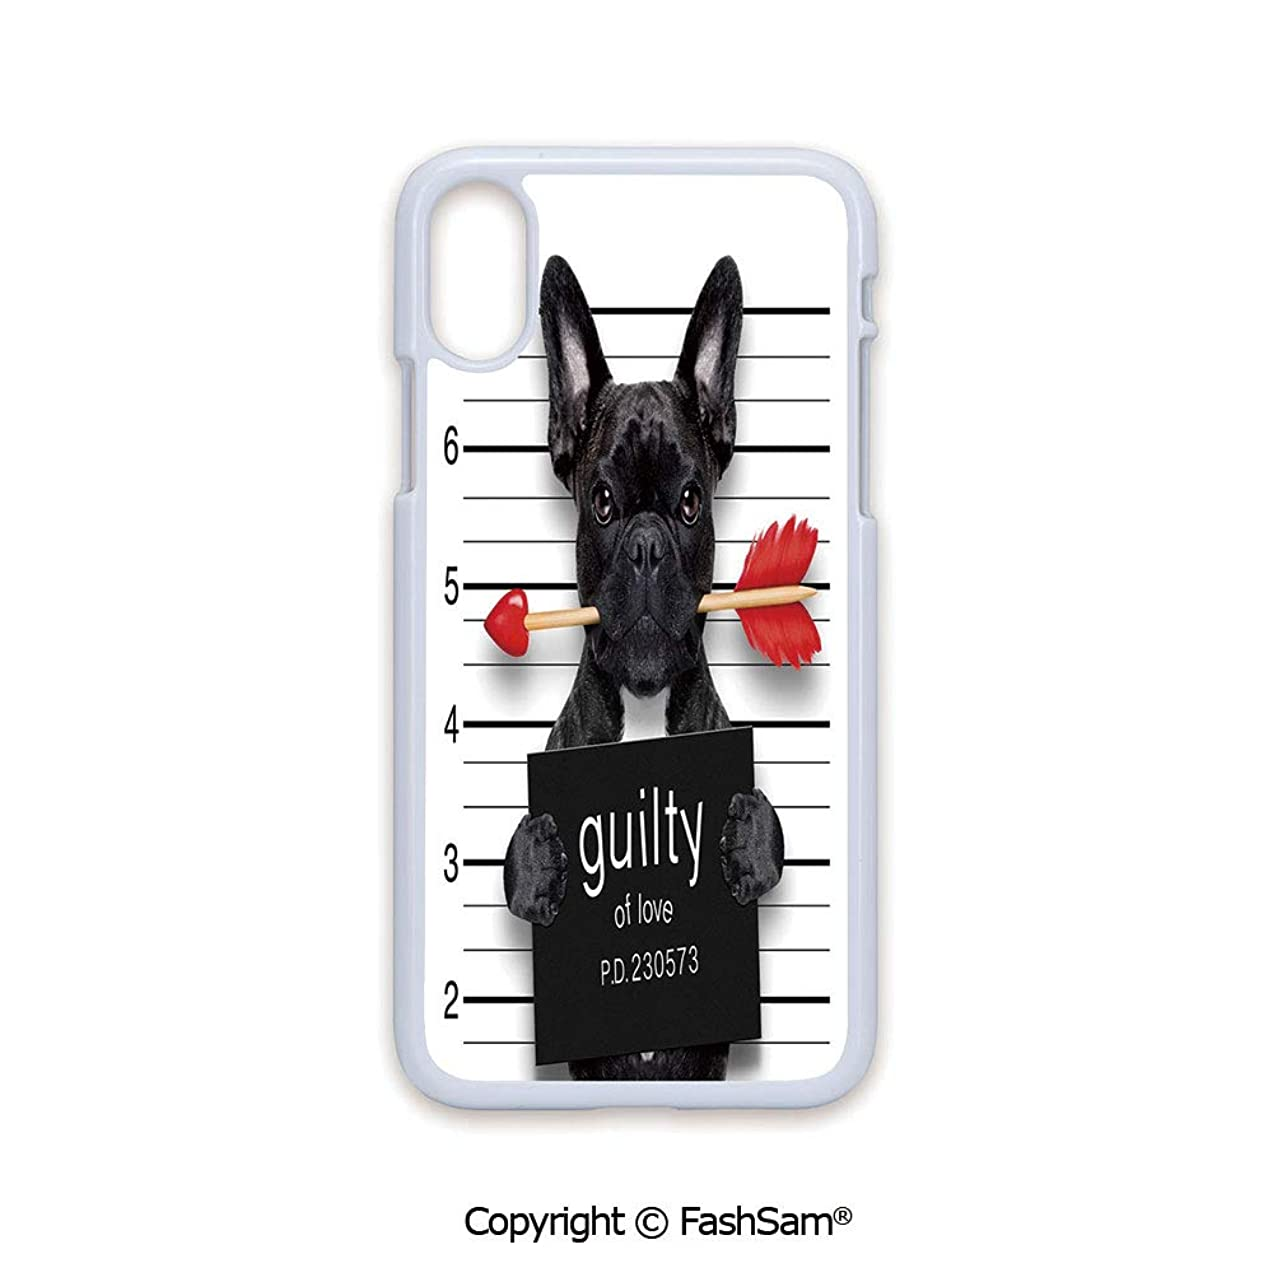 Plastic Rigid Mobile Phone case Compatible with iPhone X Black Edge Valentines Bulldog with Rose in Mouth As Mug Shot Guilty of Love Romance Design Decorative 2D Print Hard Plastic Phone Case